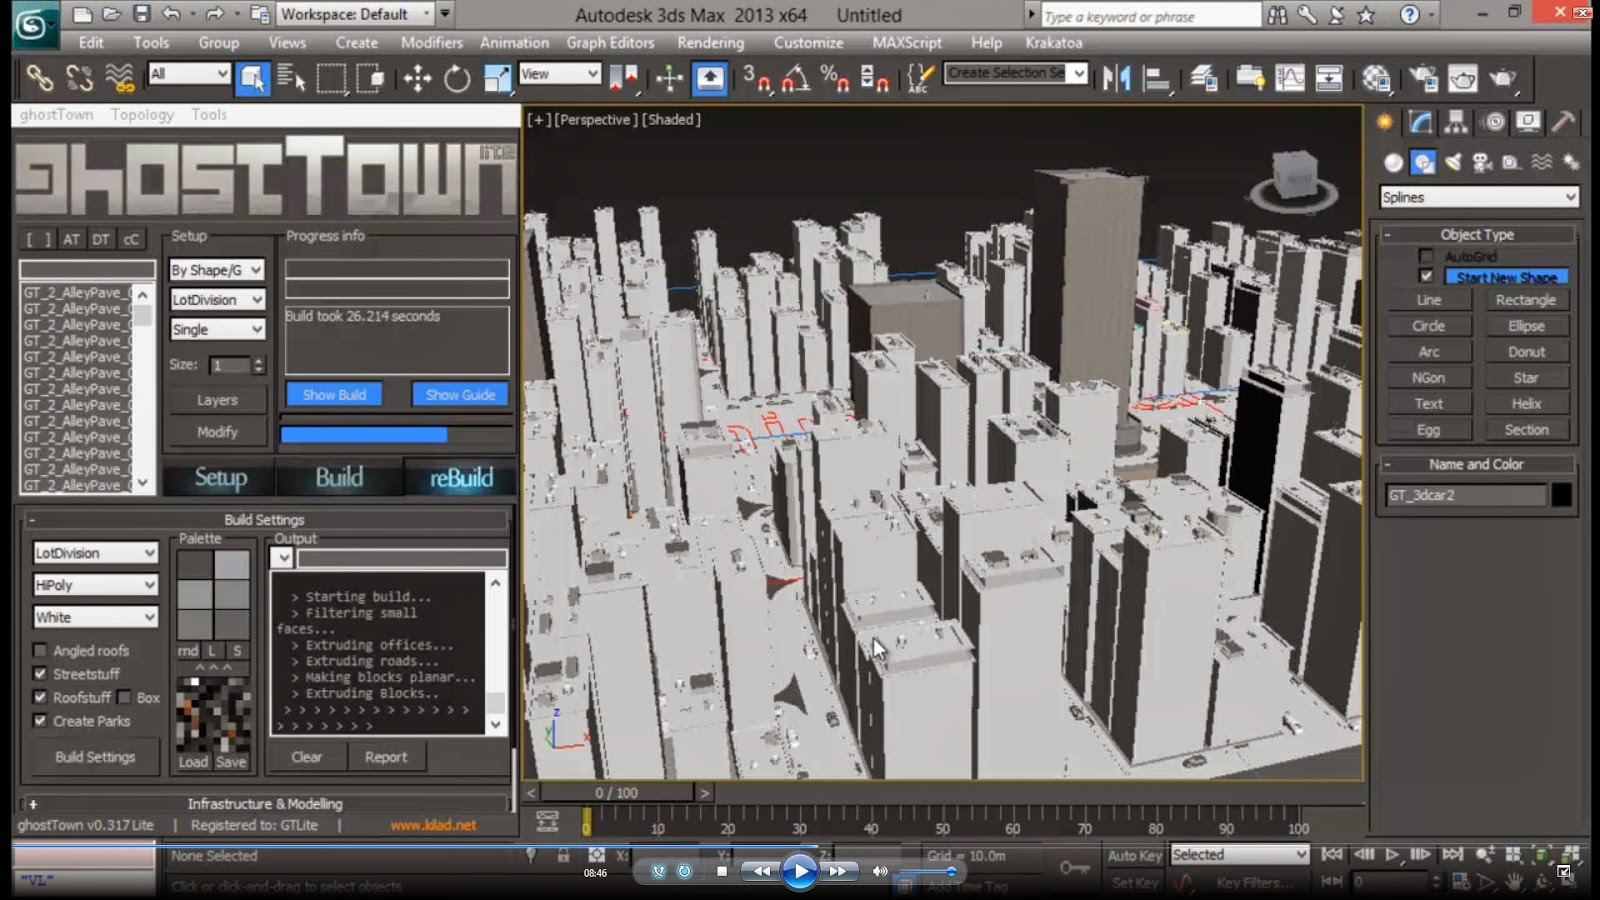 Creating low poly city using ghost town for 3ds max | CG TUTORIAL